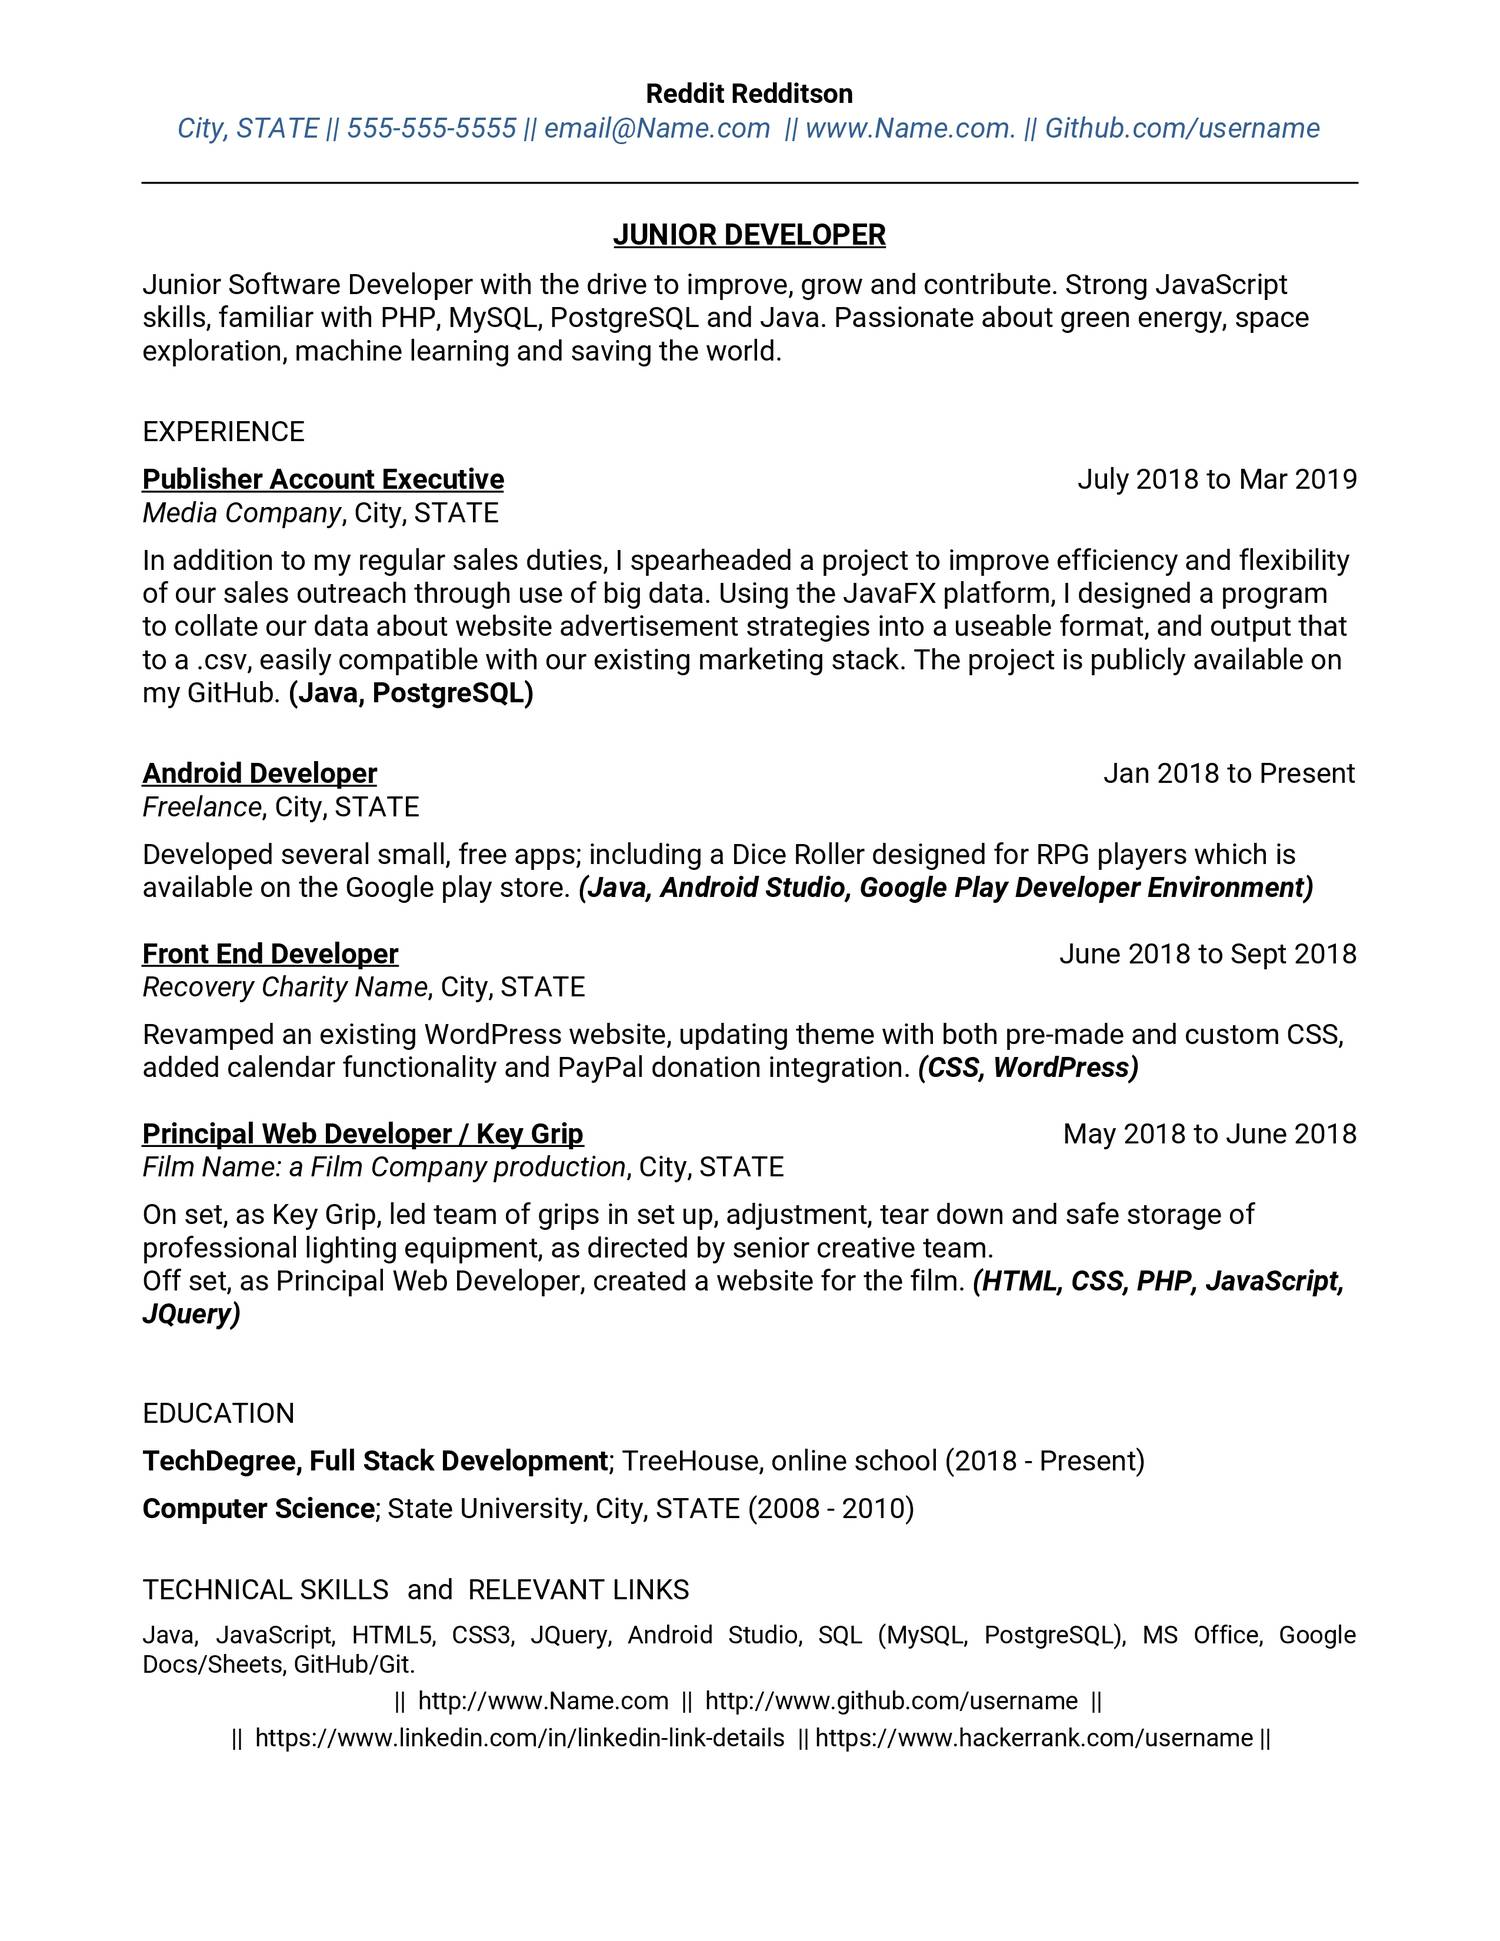 Anonymized Dev Resume pdf | DocDroid